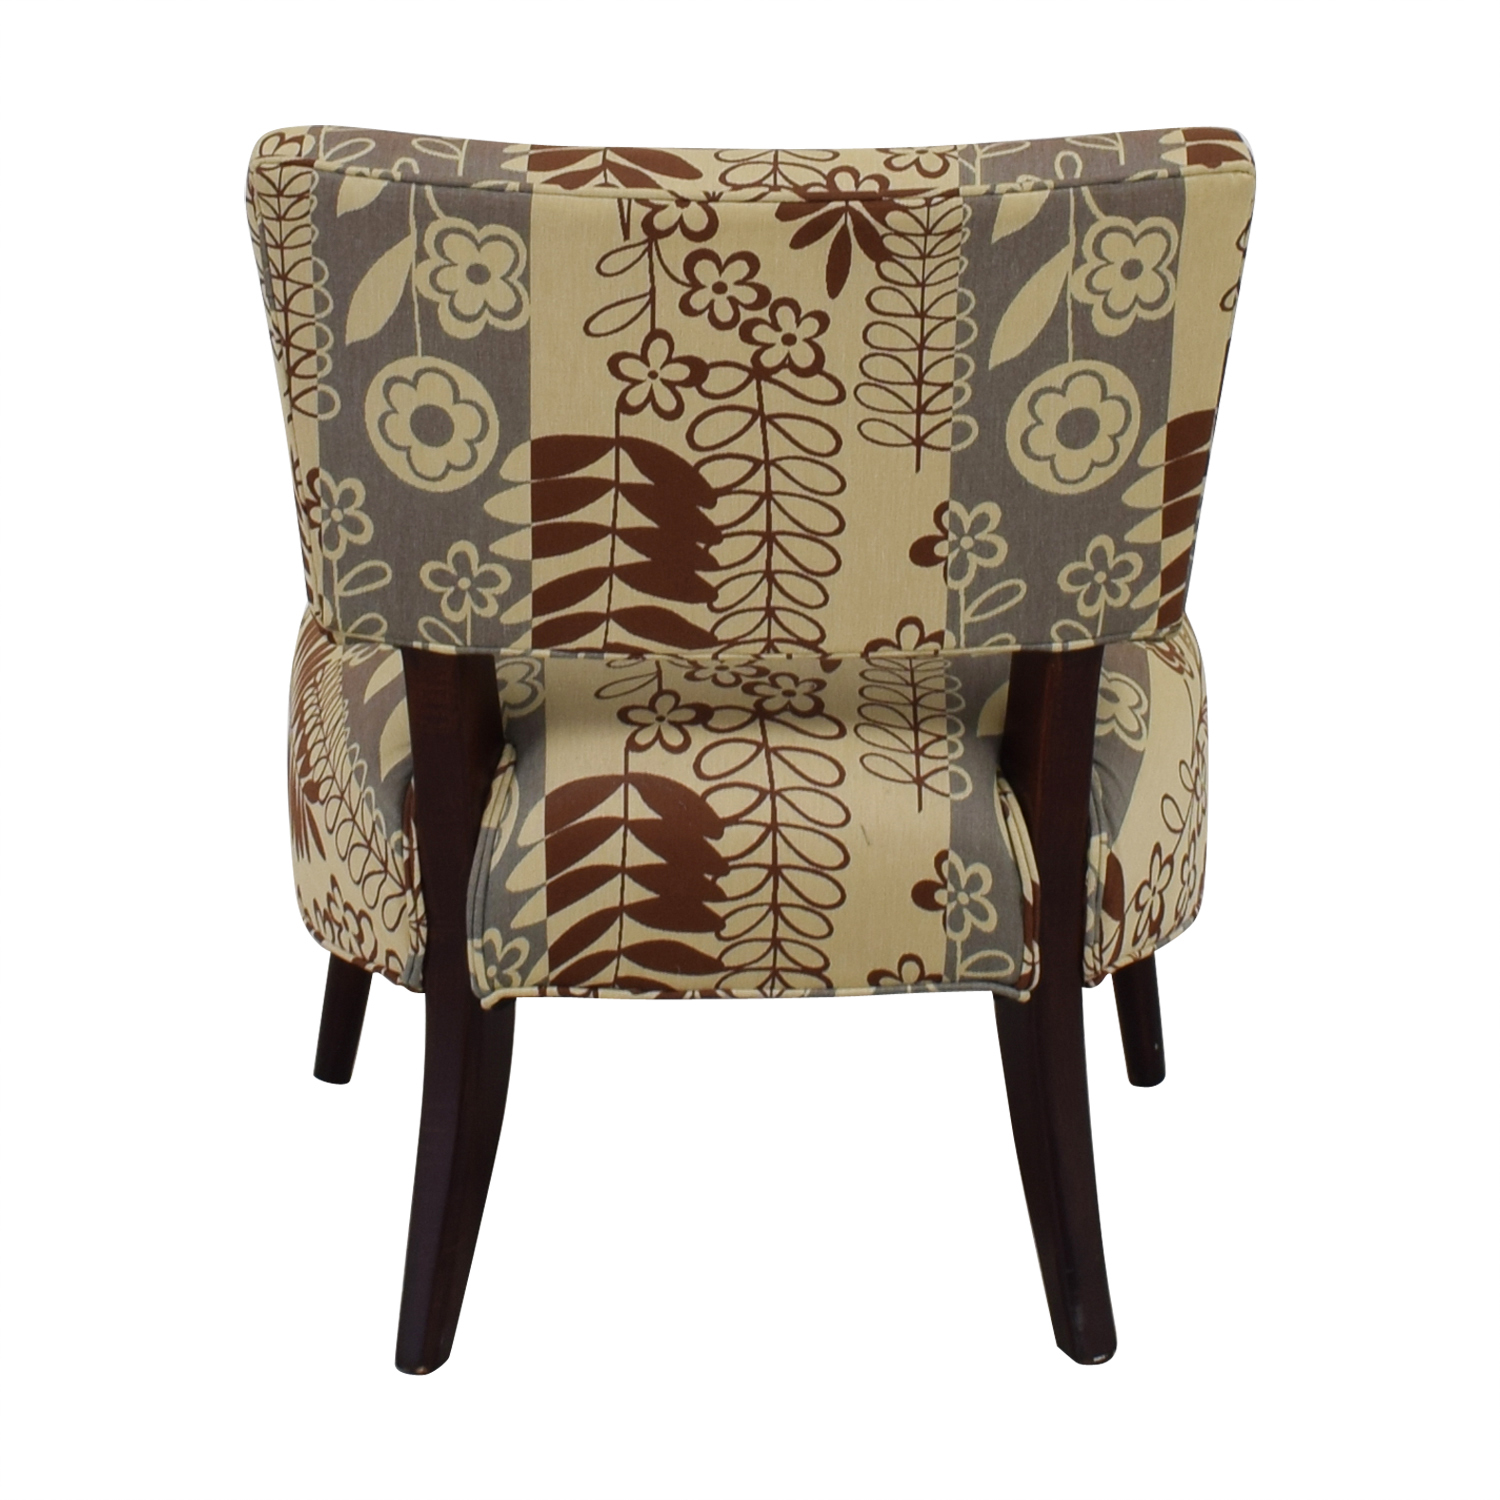 buy  Beige Multi-Colored Floral Upholstered Chair online